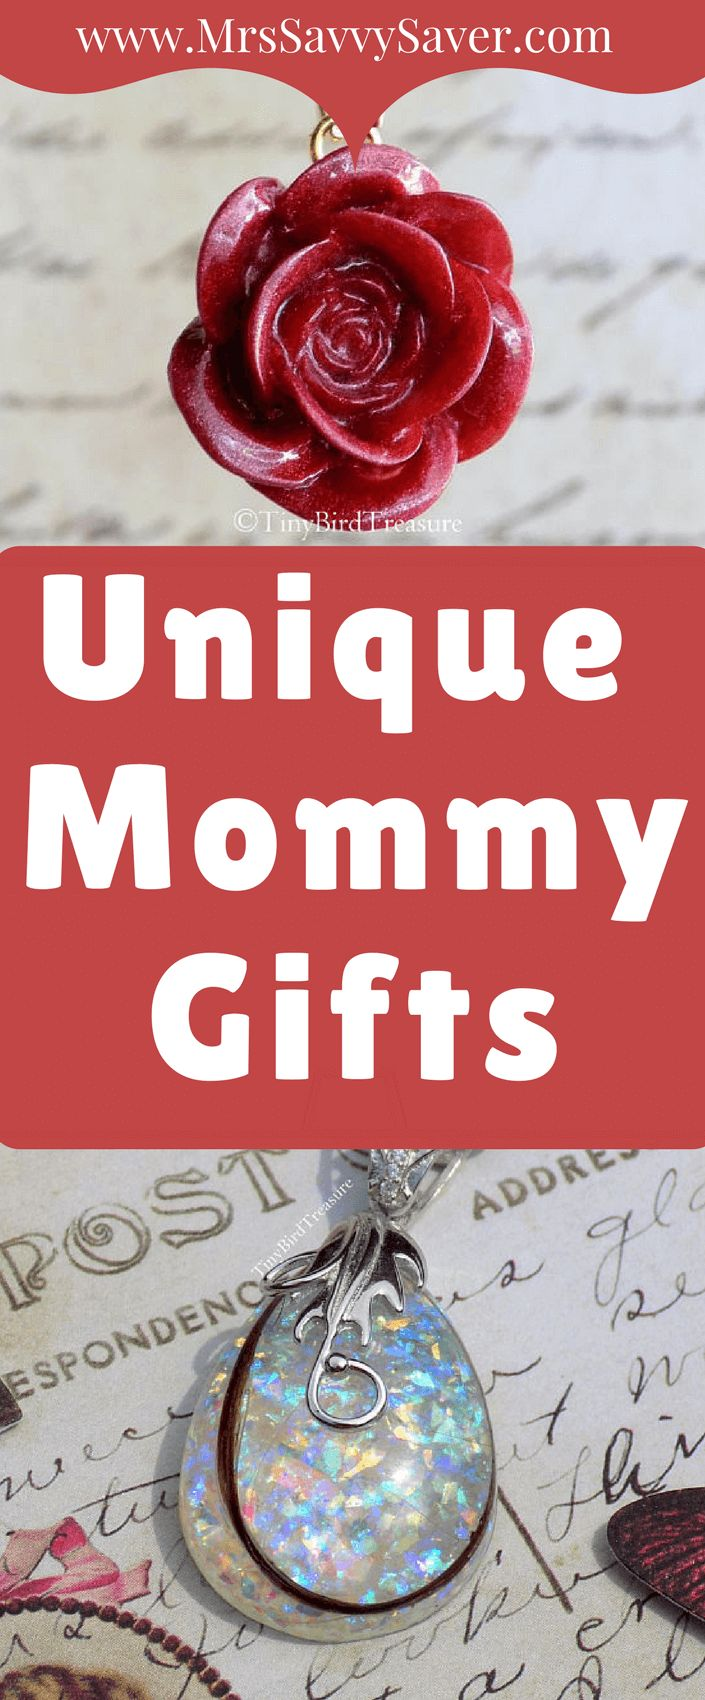 Unique Gifts for New Moms by 1 very Creative stay at home Mom